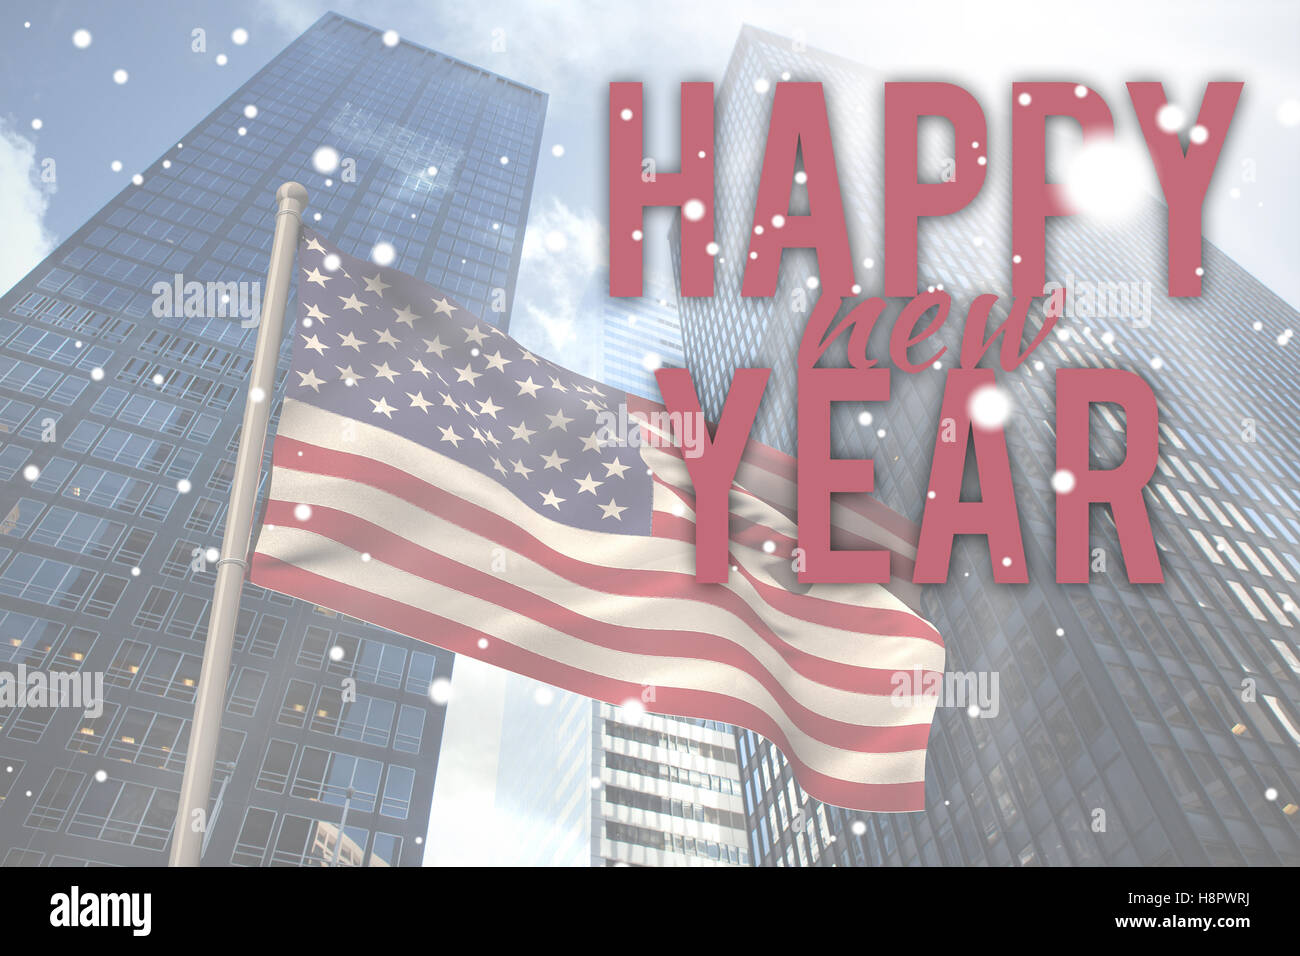 Composite image of new year graphic - Stock Image